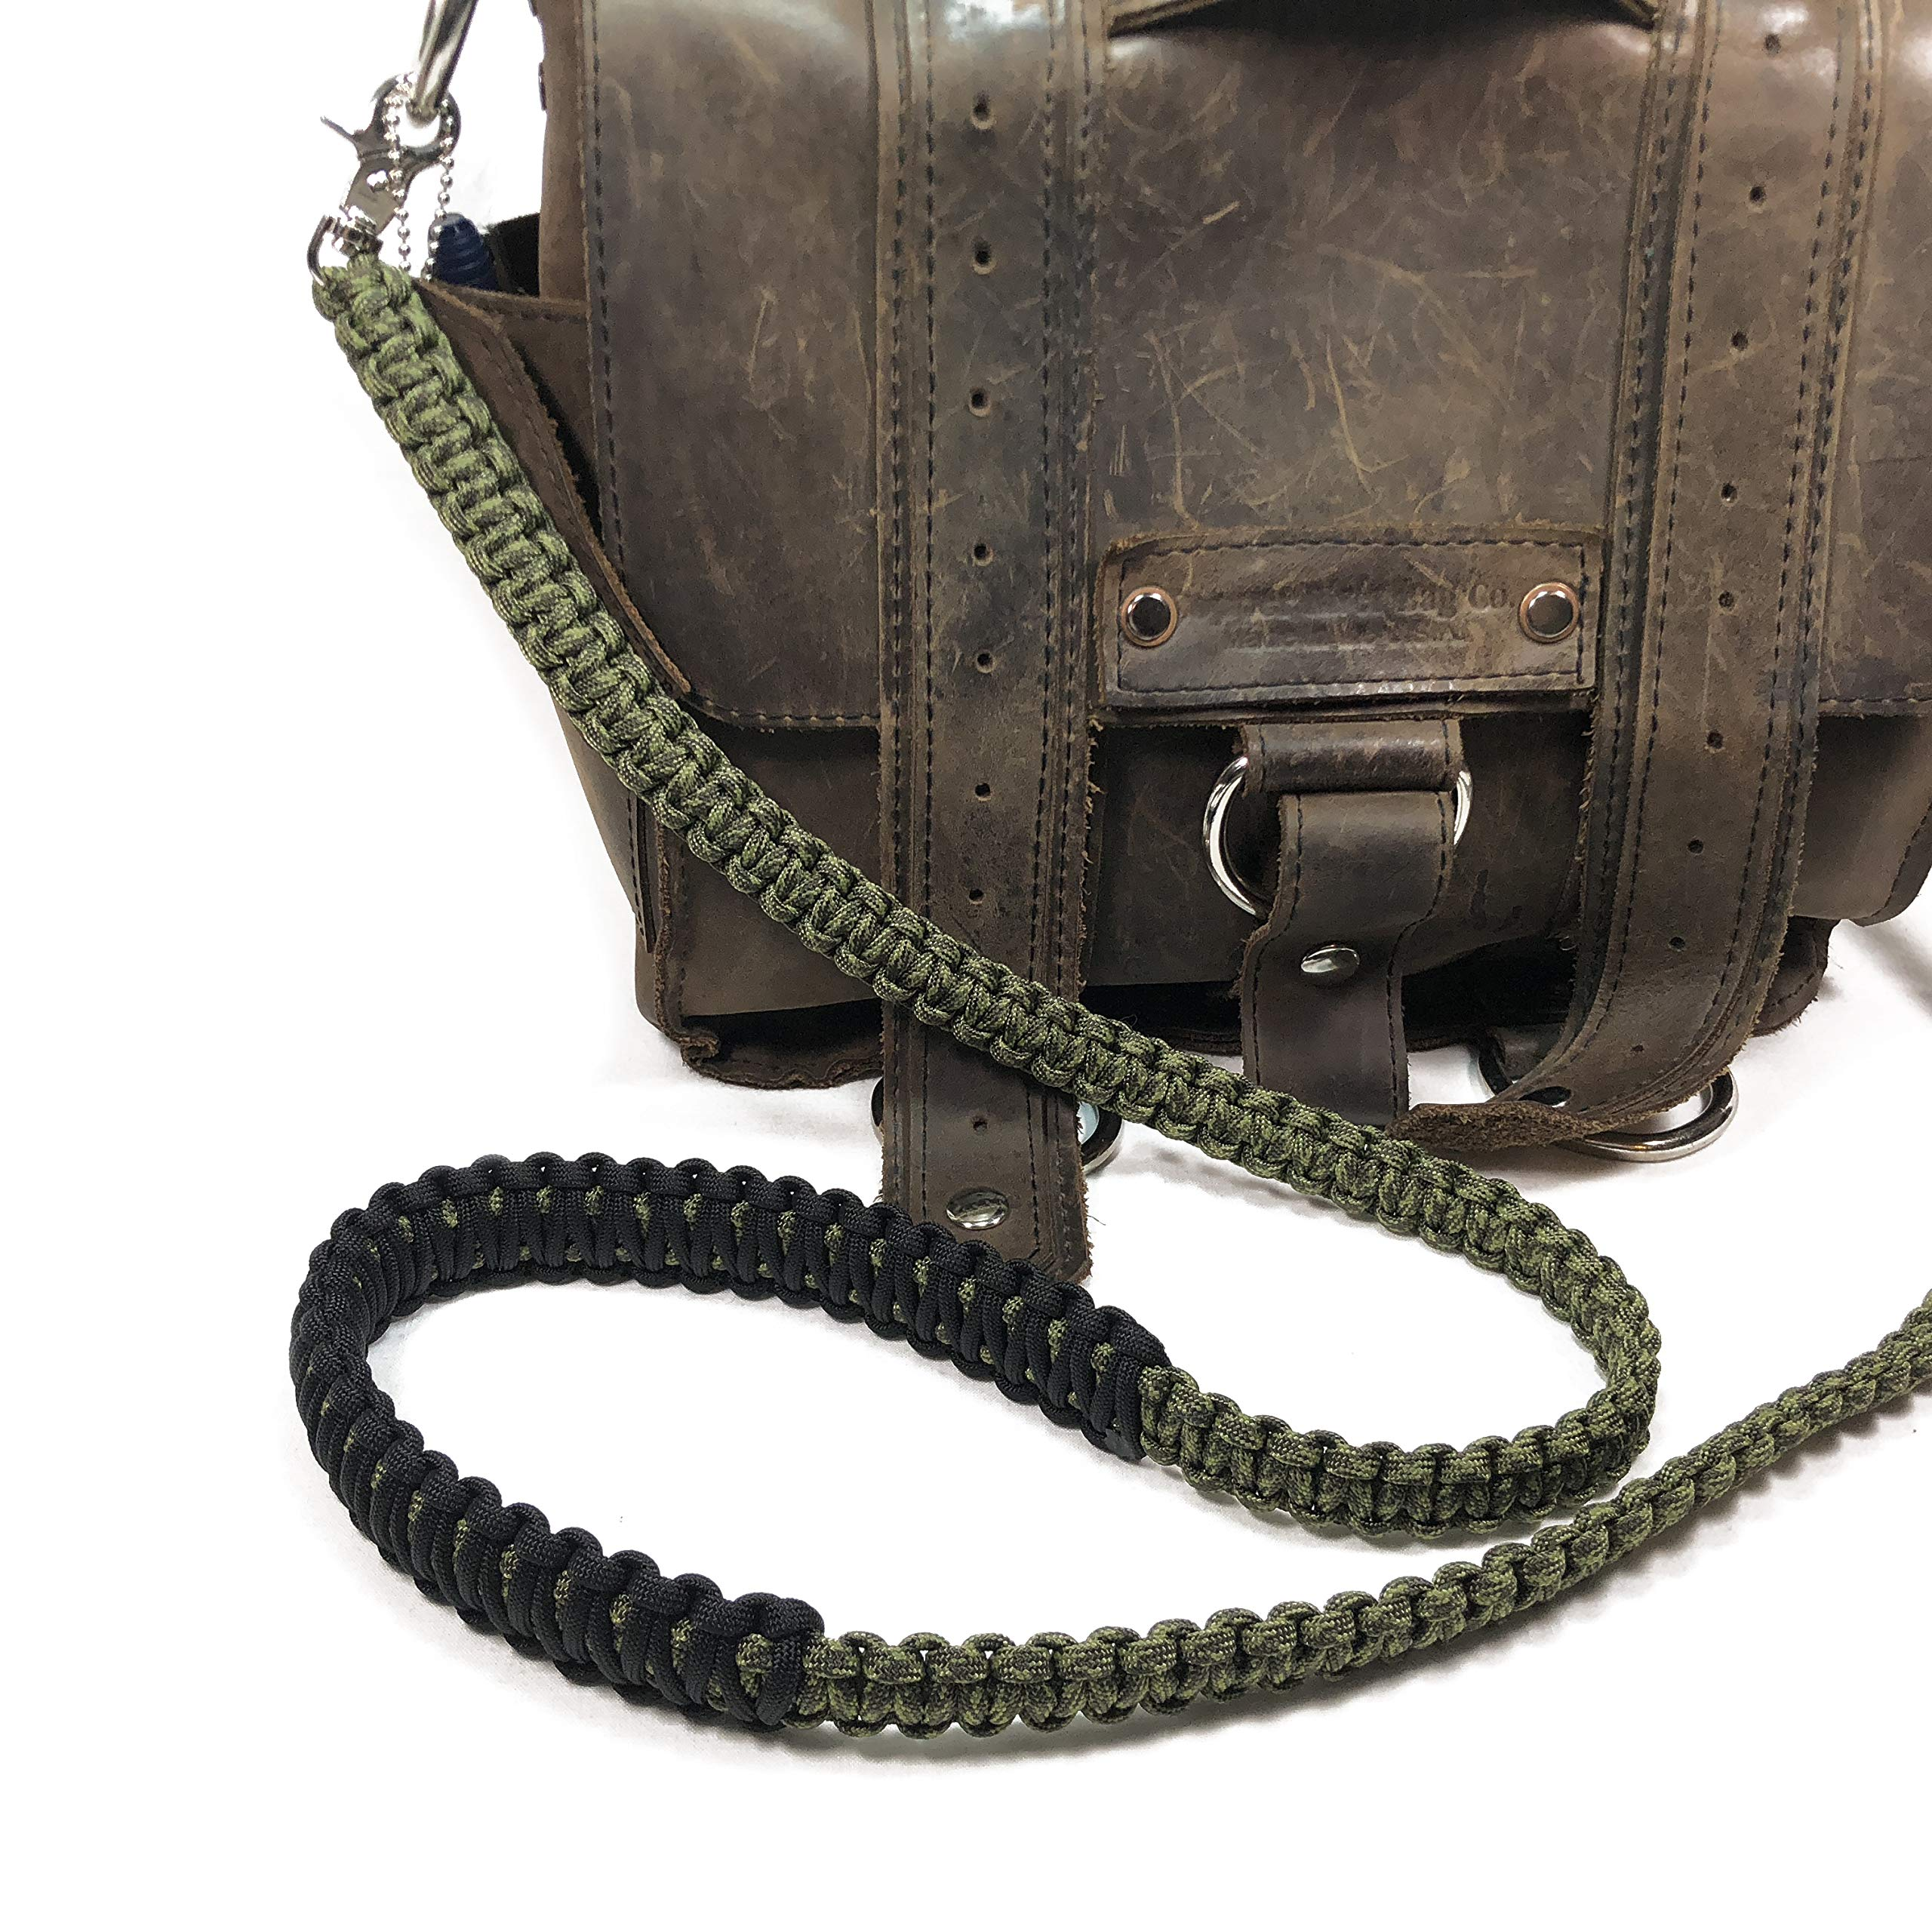 Stupid Straps Olive Drab and Moss Green Camo Paracord 50 inch Cross Body Shoulder Strap, Handbag, Messenger, Satchel Strap, Duffel Bag, Lunch Bag by Stupid Straps